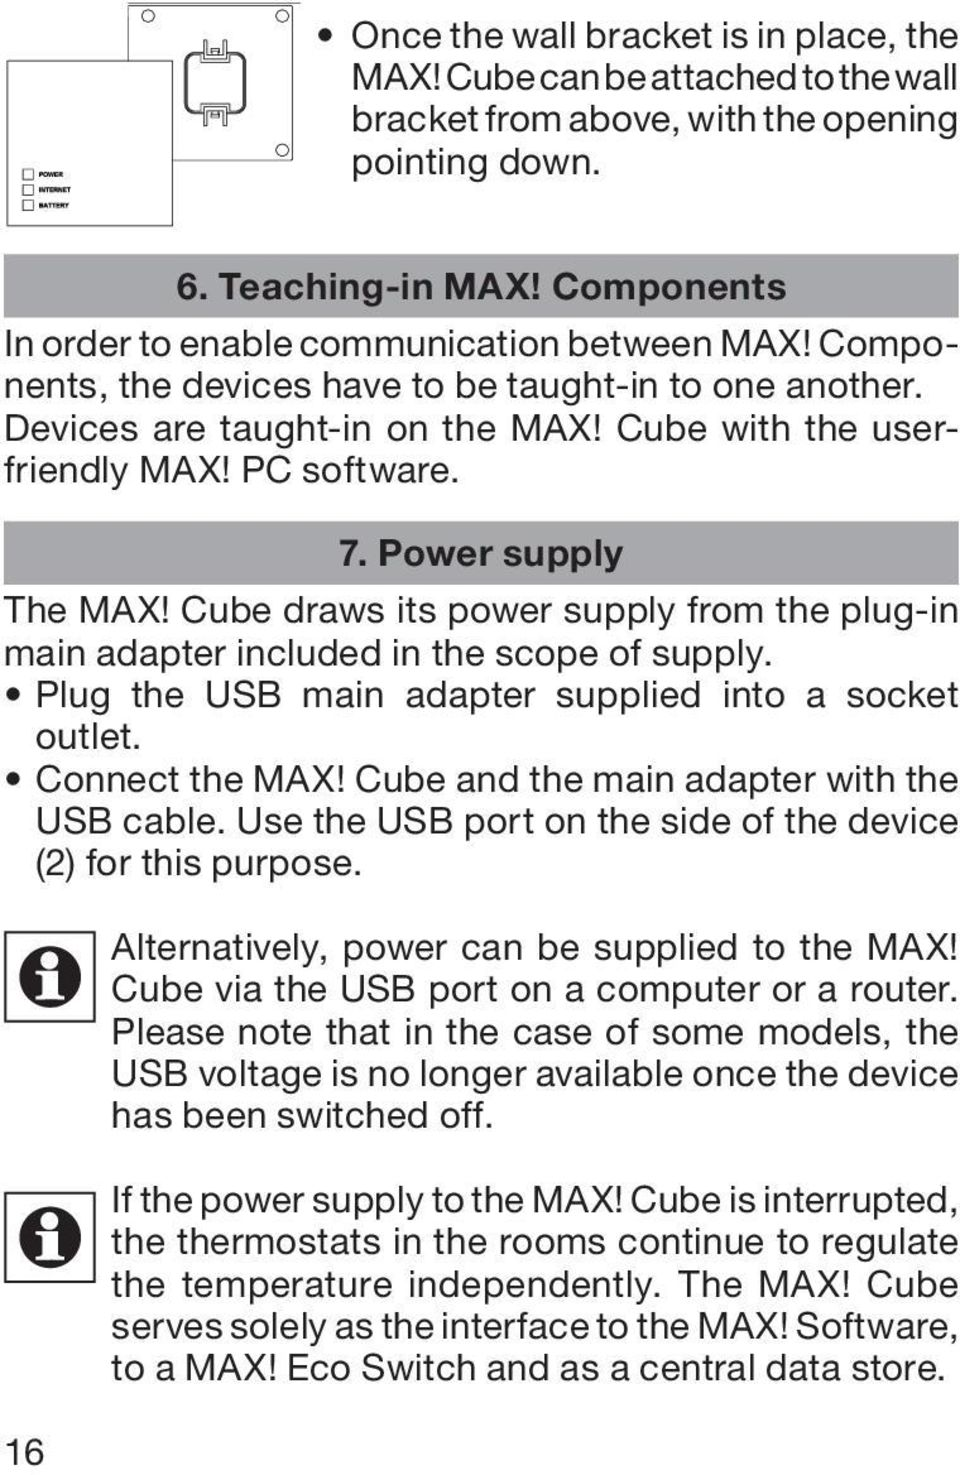 Power supply The MAX! Cube draws its power supply from the plug-in main adapter included in the scope of supply. Plug the USB main adapter supplied into a socket outlet. Connect the MAX!